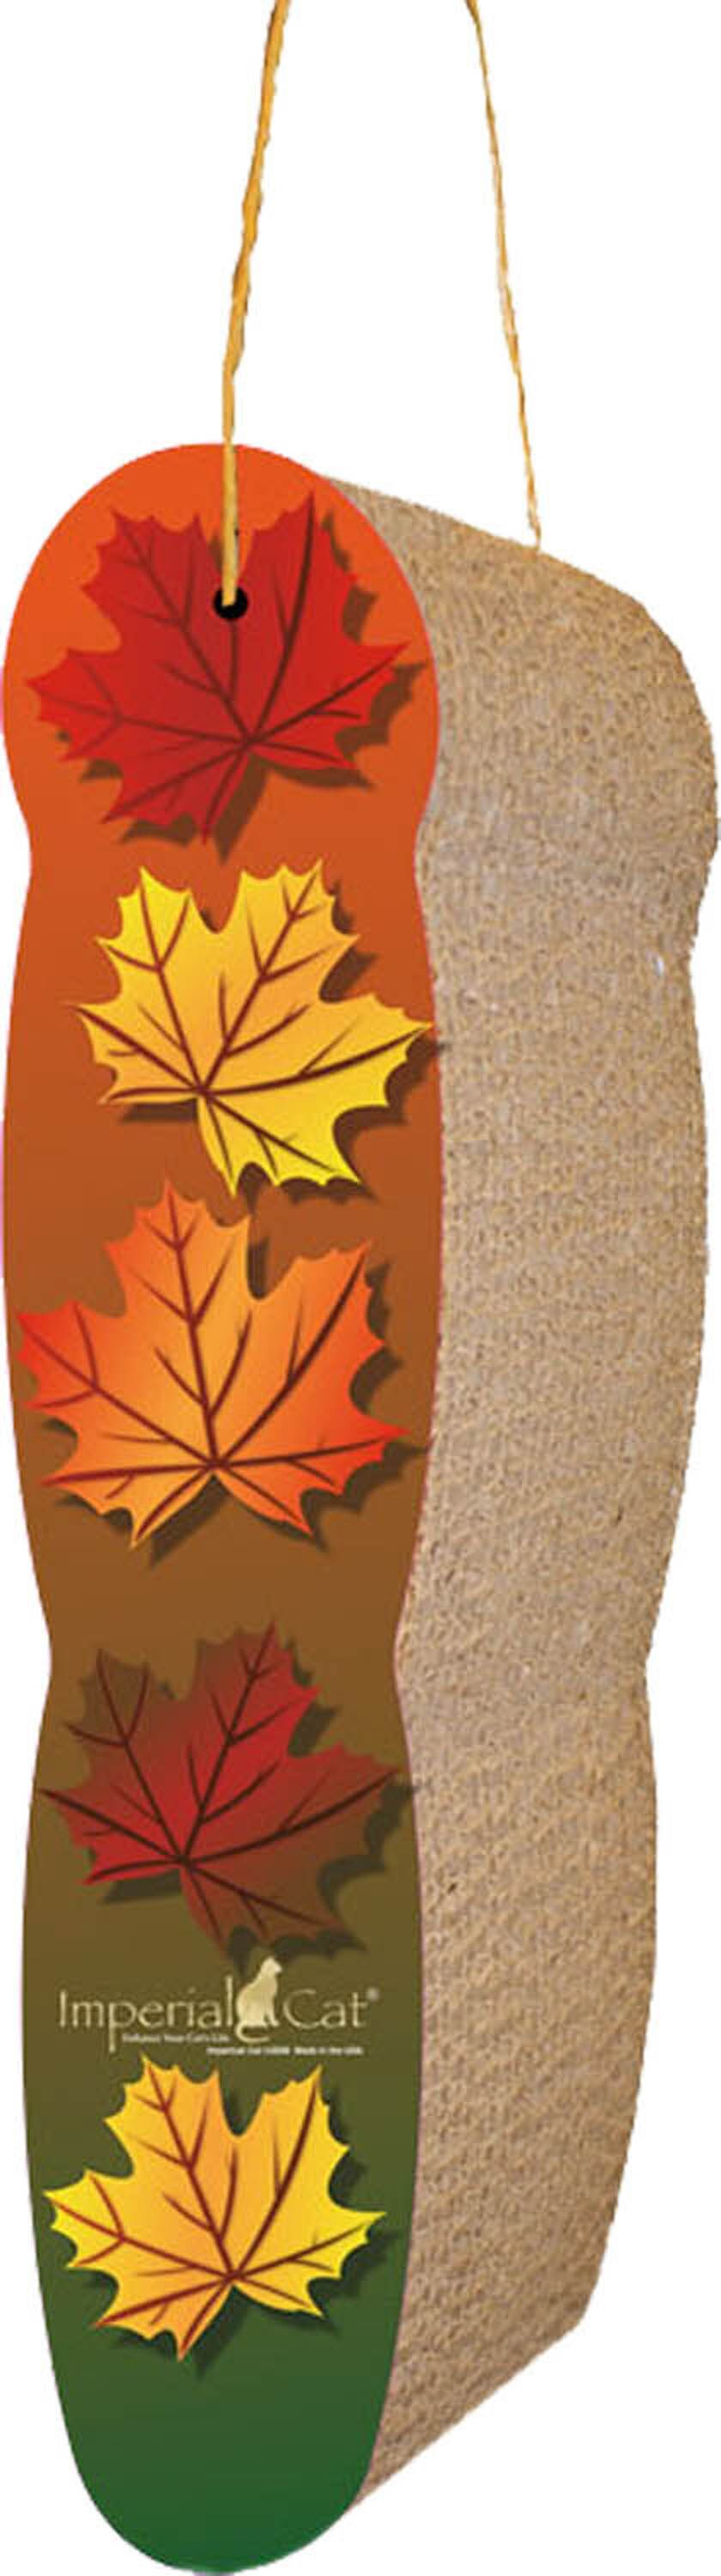 Scratch n' Shapes Leaves Hanging Recycled Paper Scratching Board